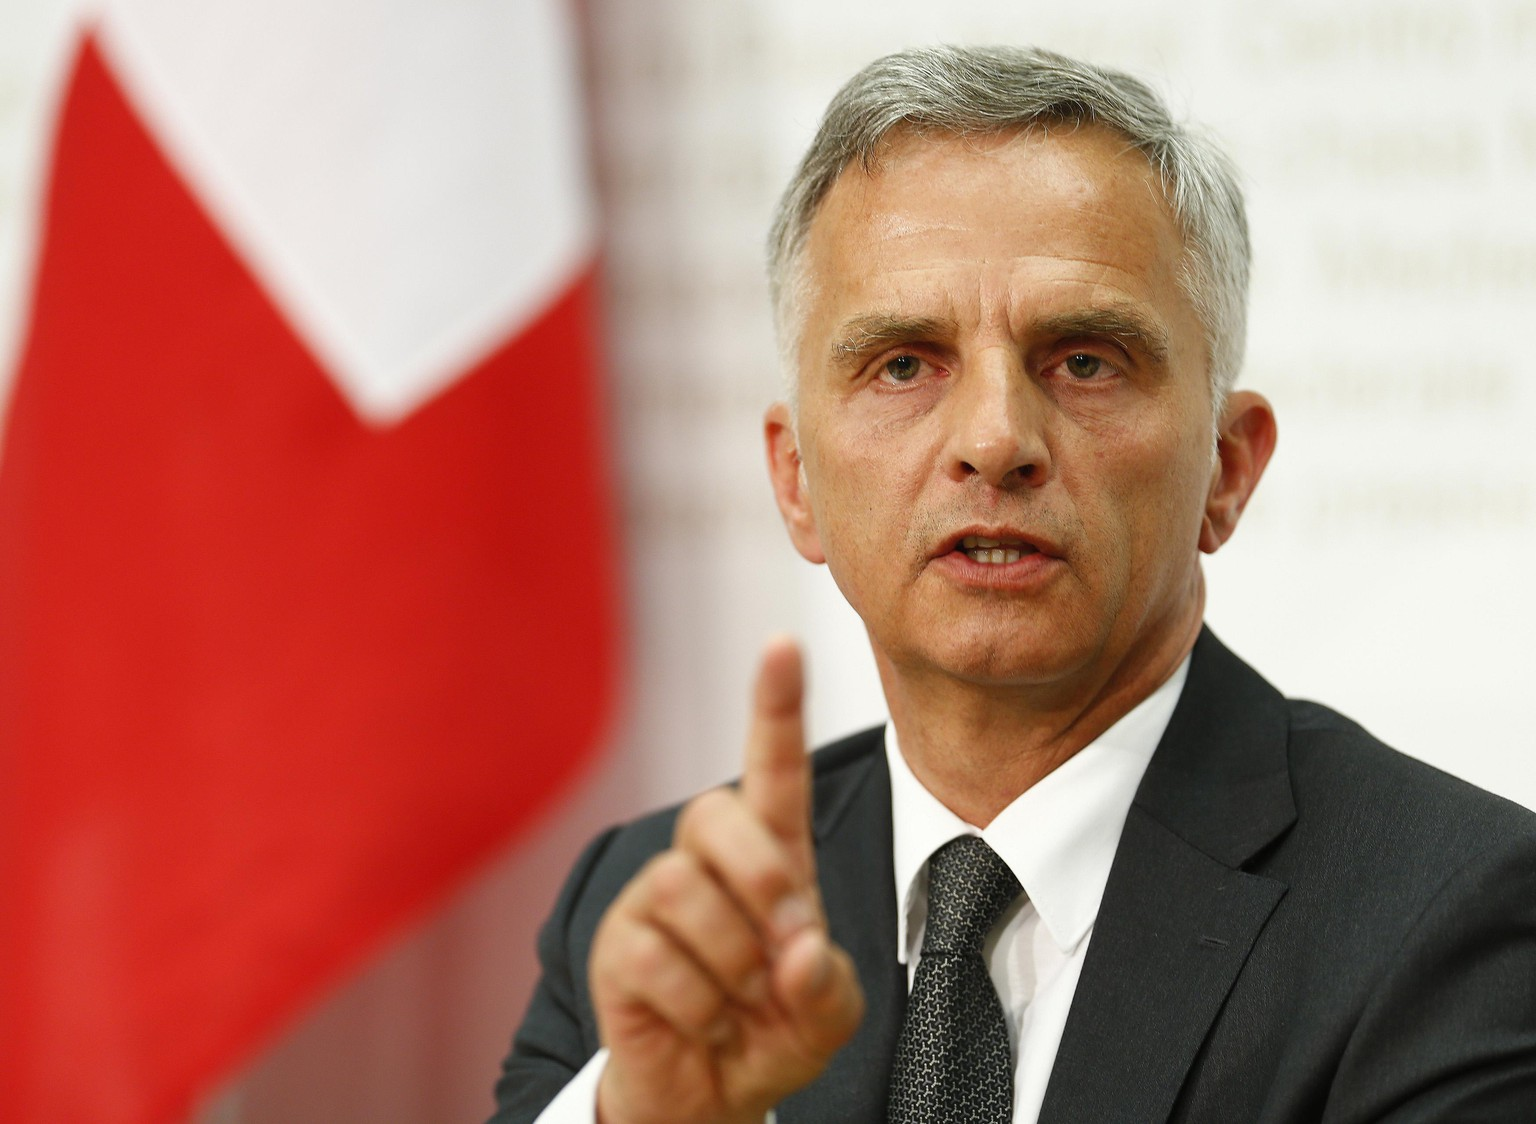 Swiss President and Foreign Minister Didier Burkhalter speaks to the media during a news conference after the weekly meeting of the Federal Council in Bern April 30, 2014. Switzerland will grant workers from Croatia access to its labour market in a bid to kickstart treaty negotiations with the European Union that were frozen after Swiss voters approved curbs on immigration. REUTERS/Ruben Sprich (SWITZERLAND - Tags: POLITICS SOCIETY IMMIGRATION)